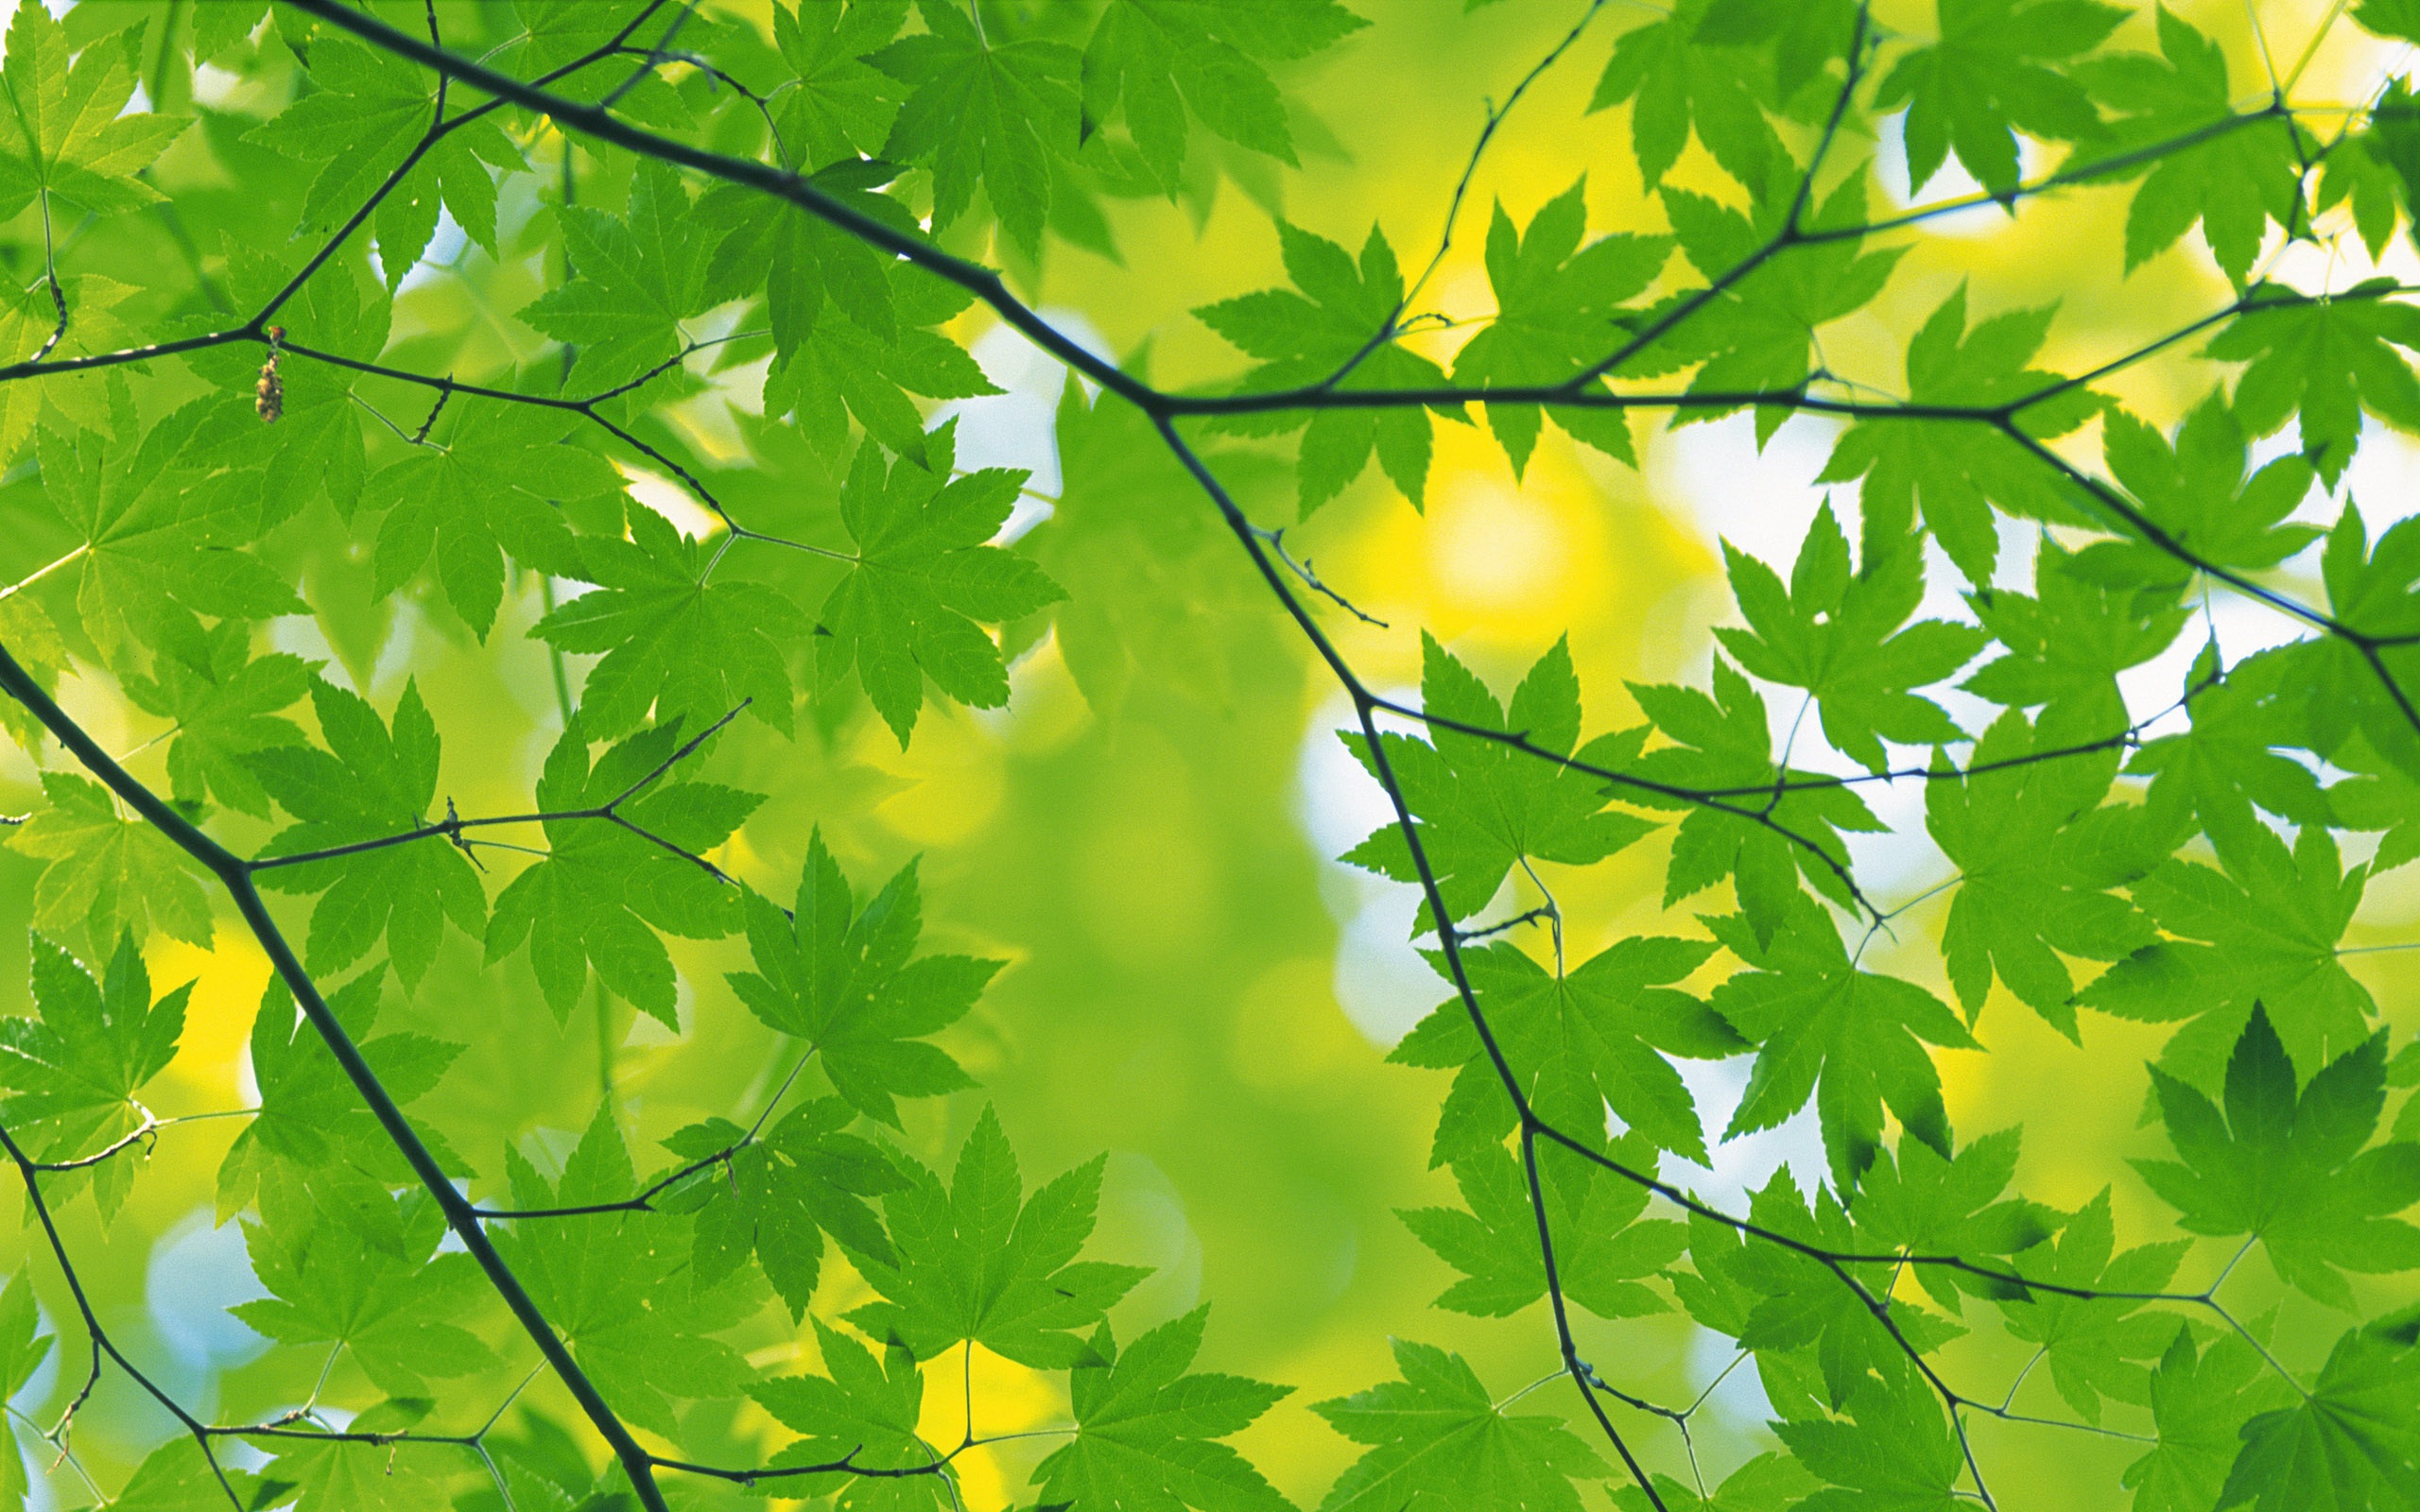 Nature Green Leaves Wallpapers   2560x1600   2201760 2560x1600